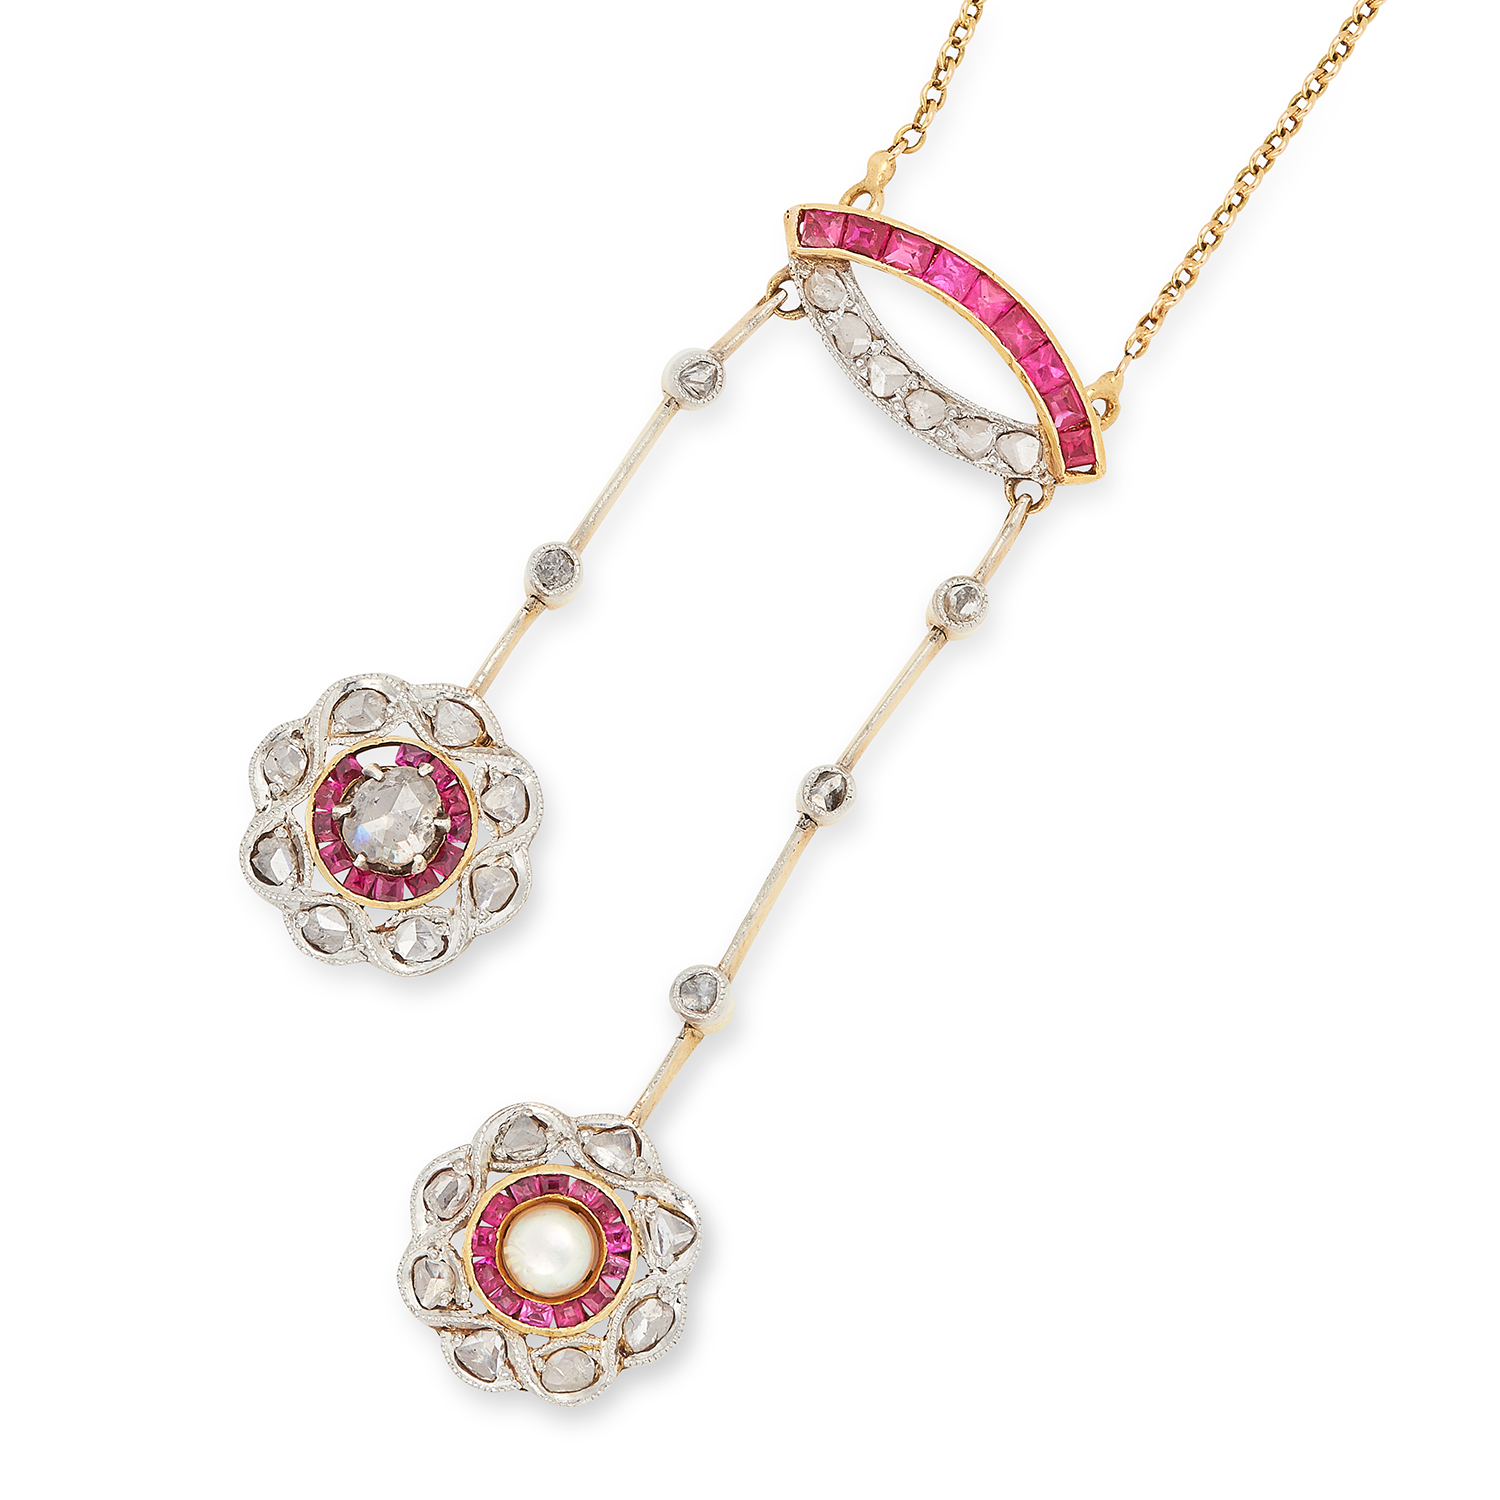 ANTIQUE RUBY, DIAMOND AND PEARL PENDANT set with step cut rubies, rose cut diamonds and a pearl, 6.